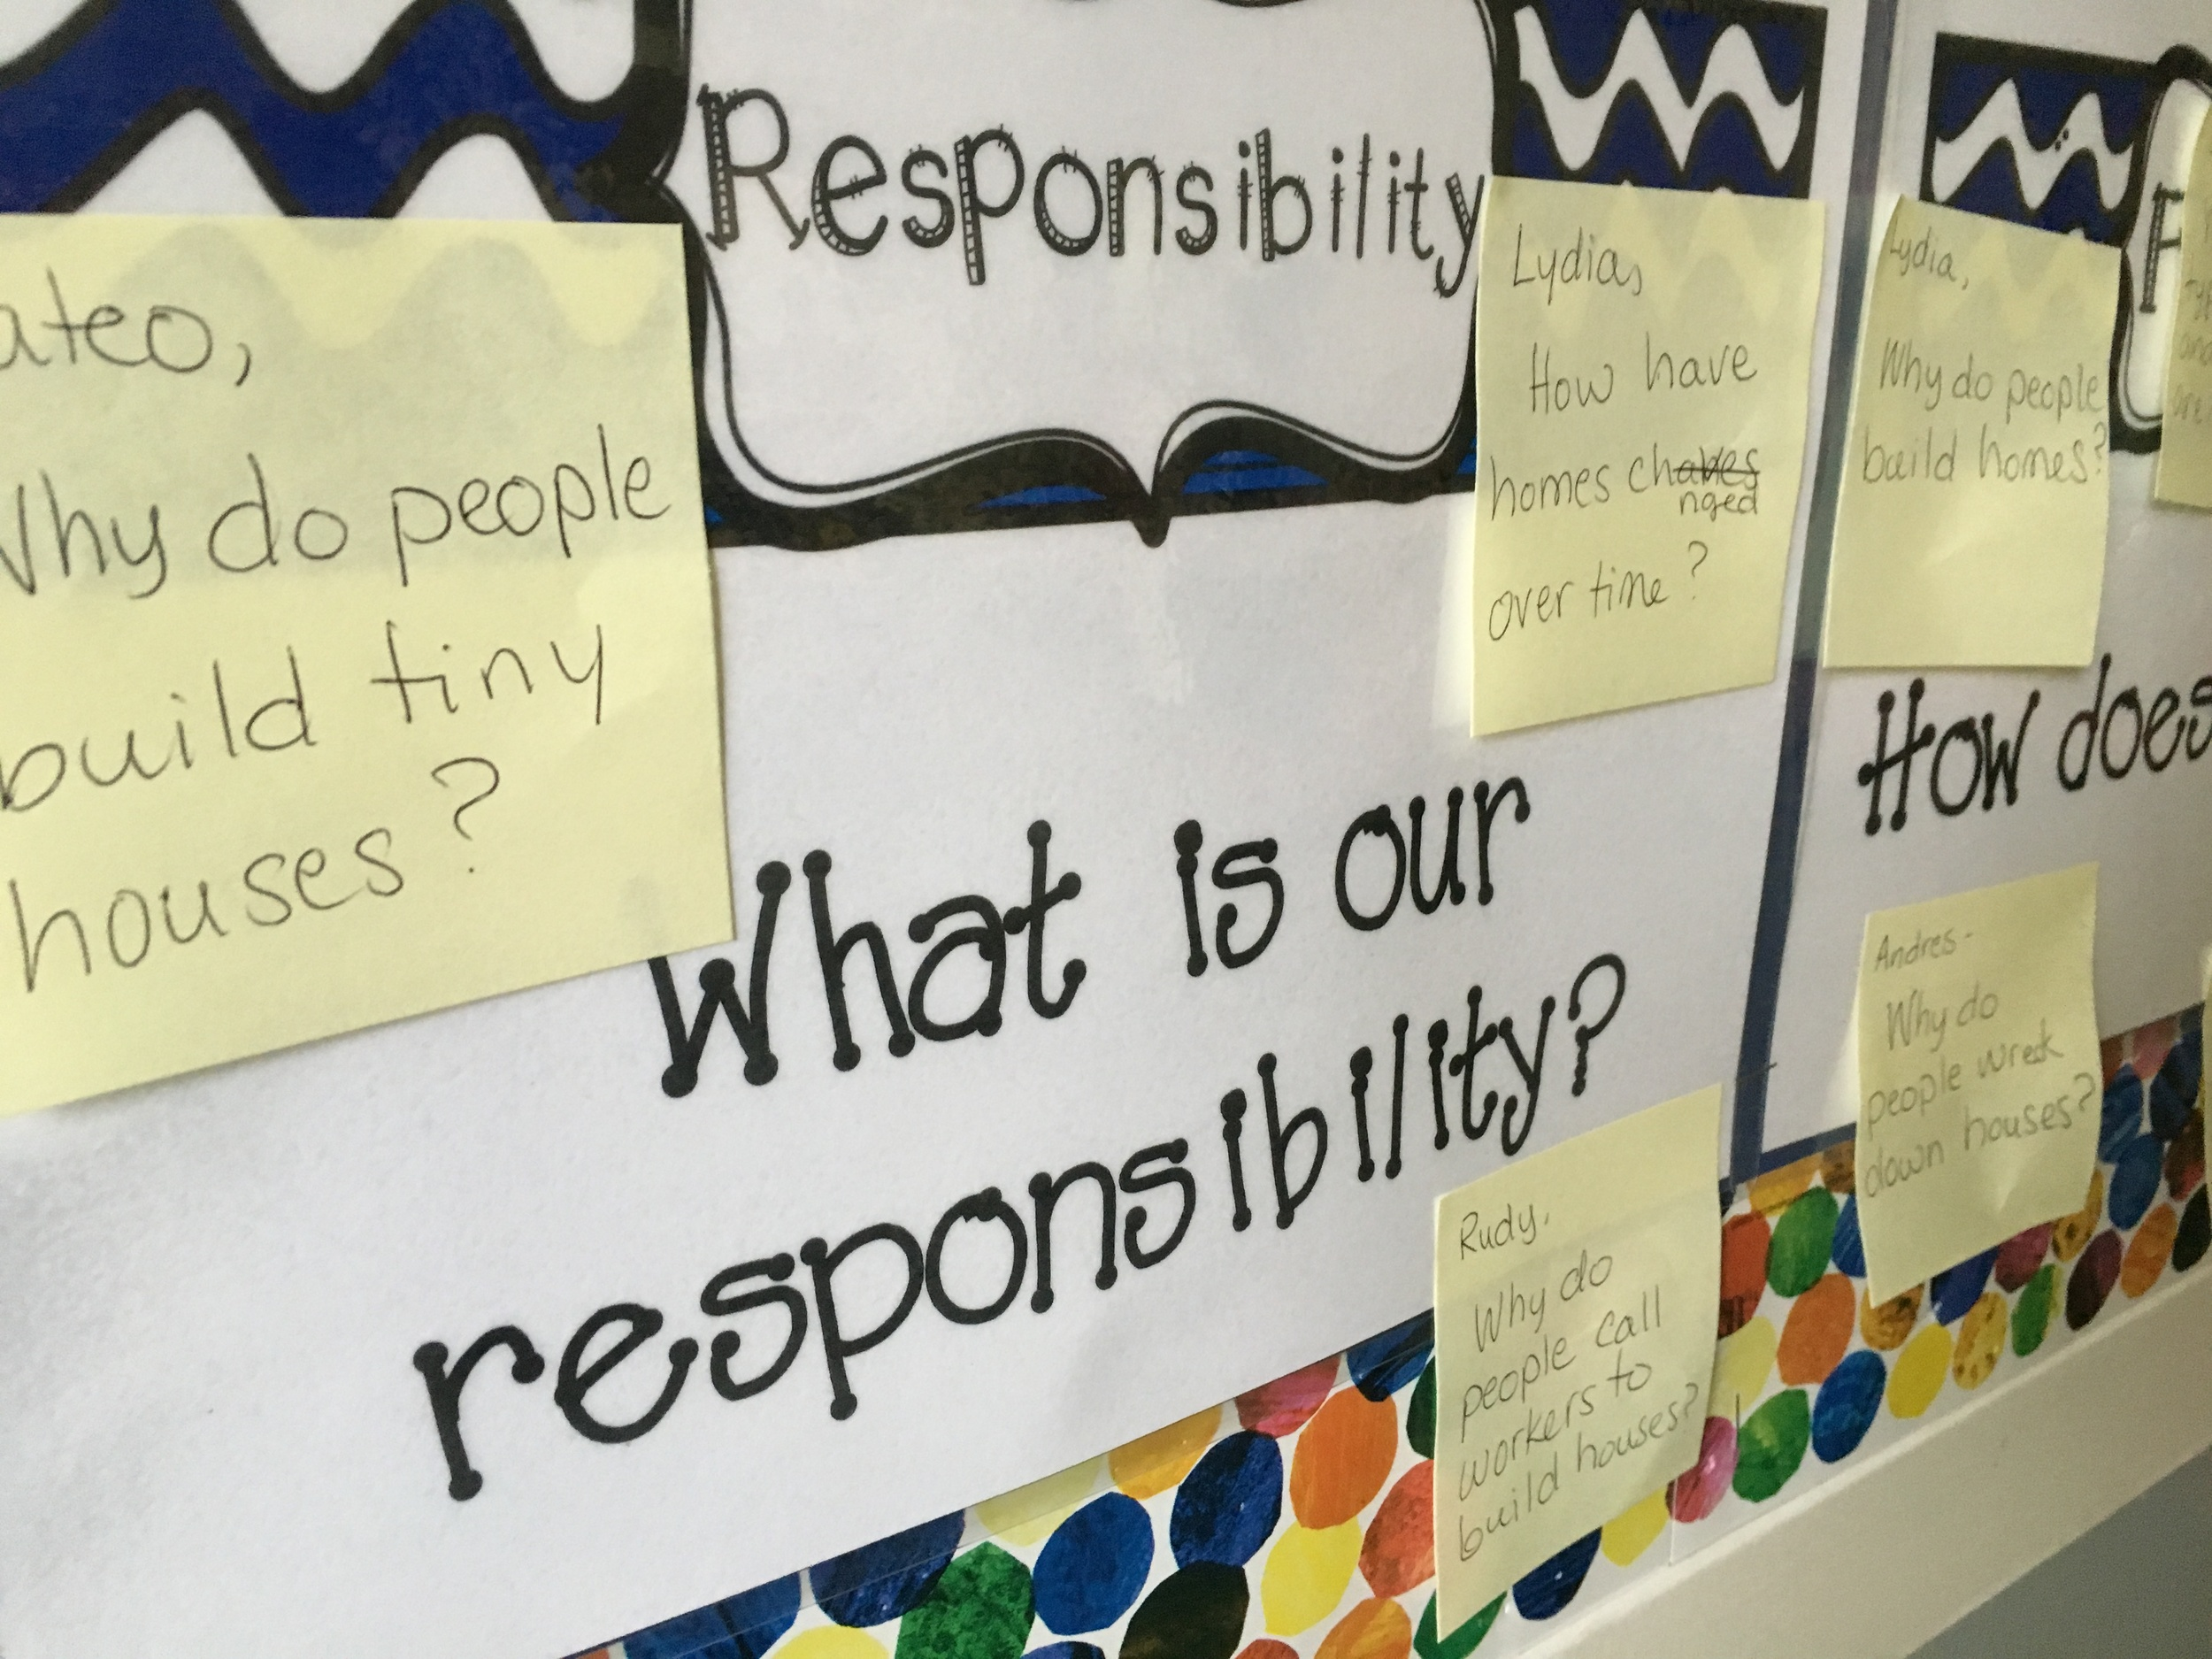 Teach students to ask different kinds of questions with increasing complexity. And shape units around students' own questions and sense of social responsibility.